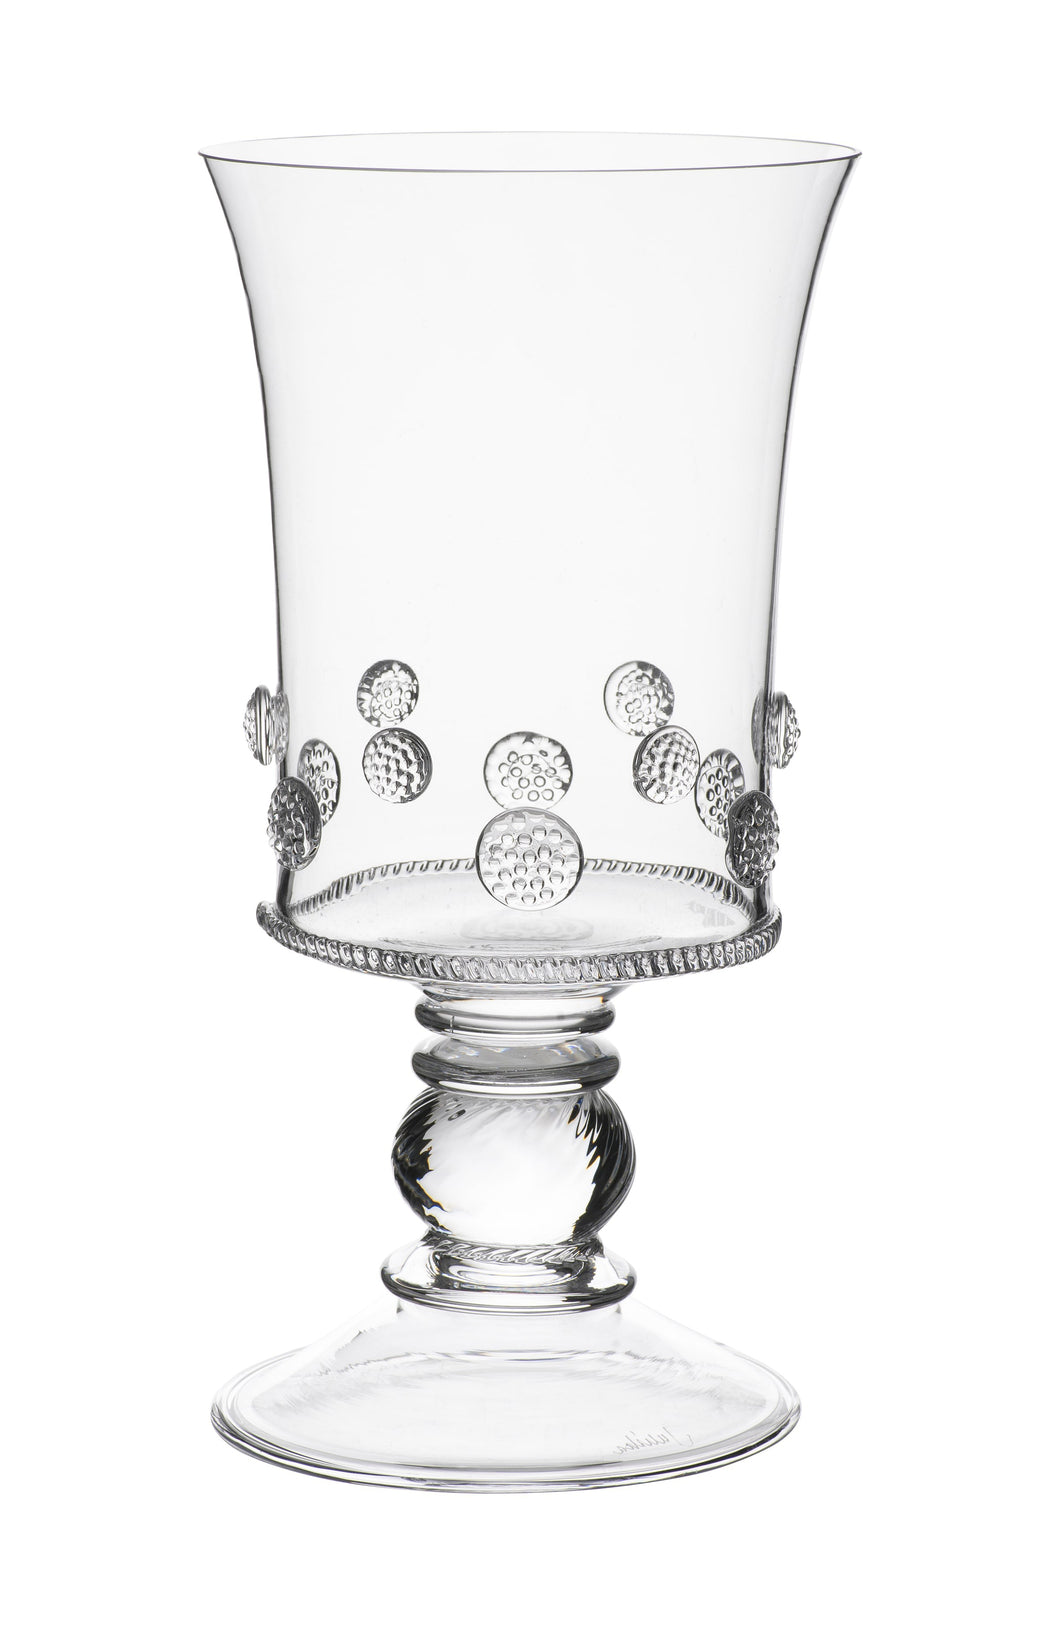 Fiorella Grande Footed Vase - By Juliska